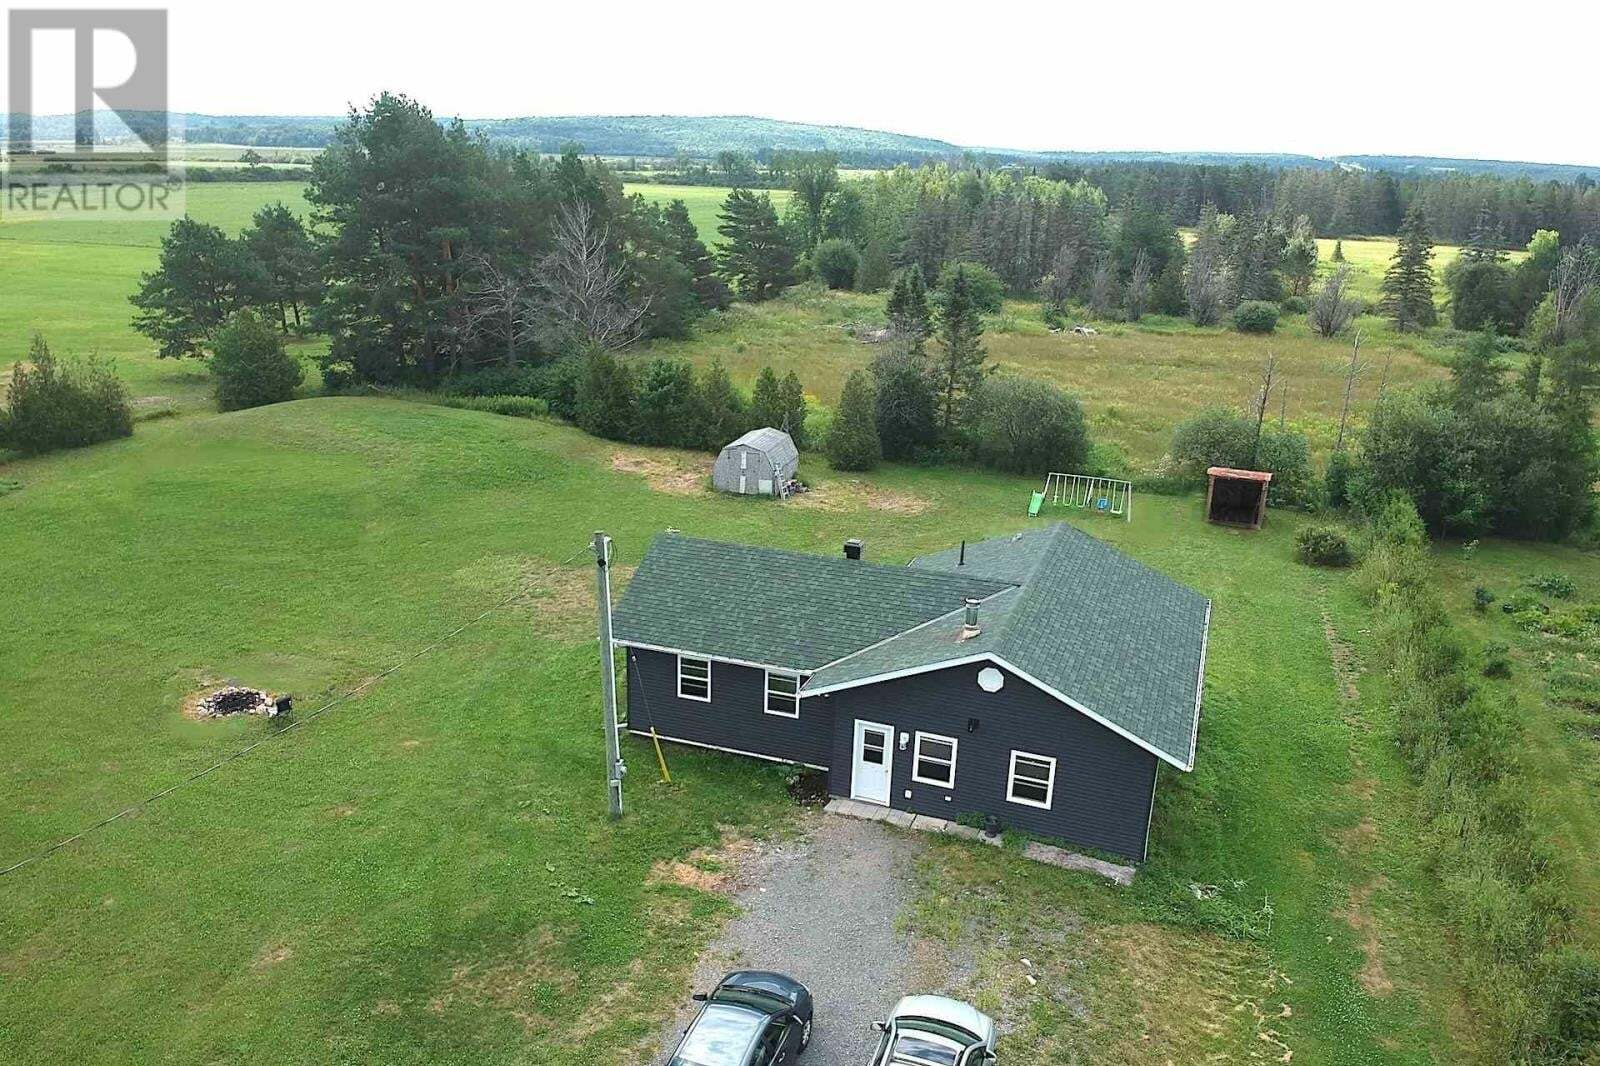 House for sale at 49 Bar River Rd. Echo Bay Ontario - MLS: SM129460